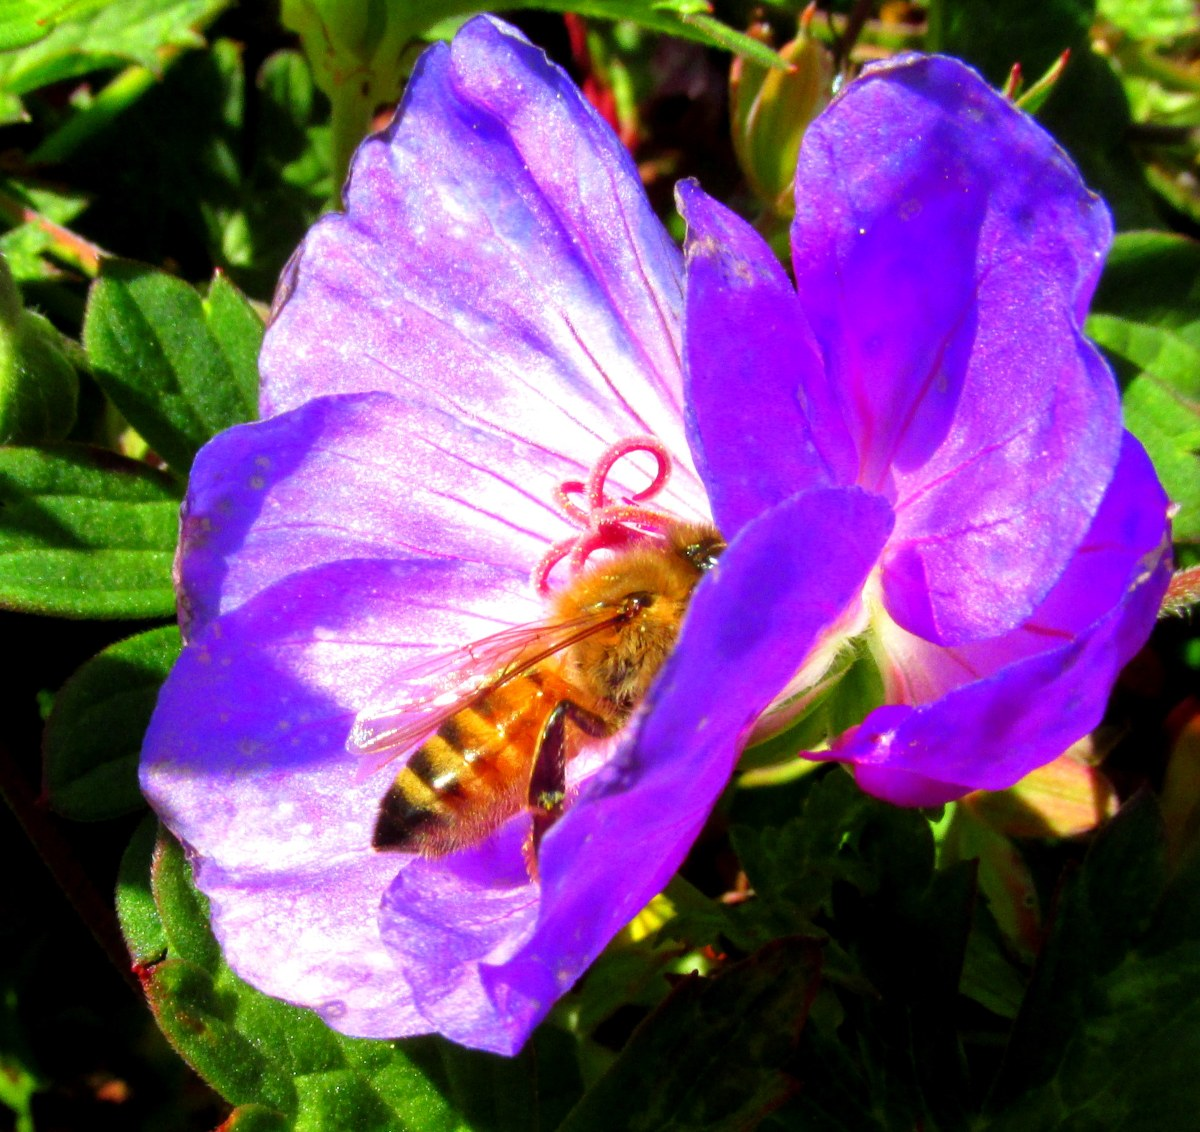 hight resolution of garden insects wasps bees of late and previously